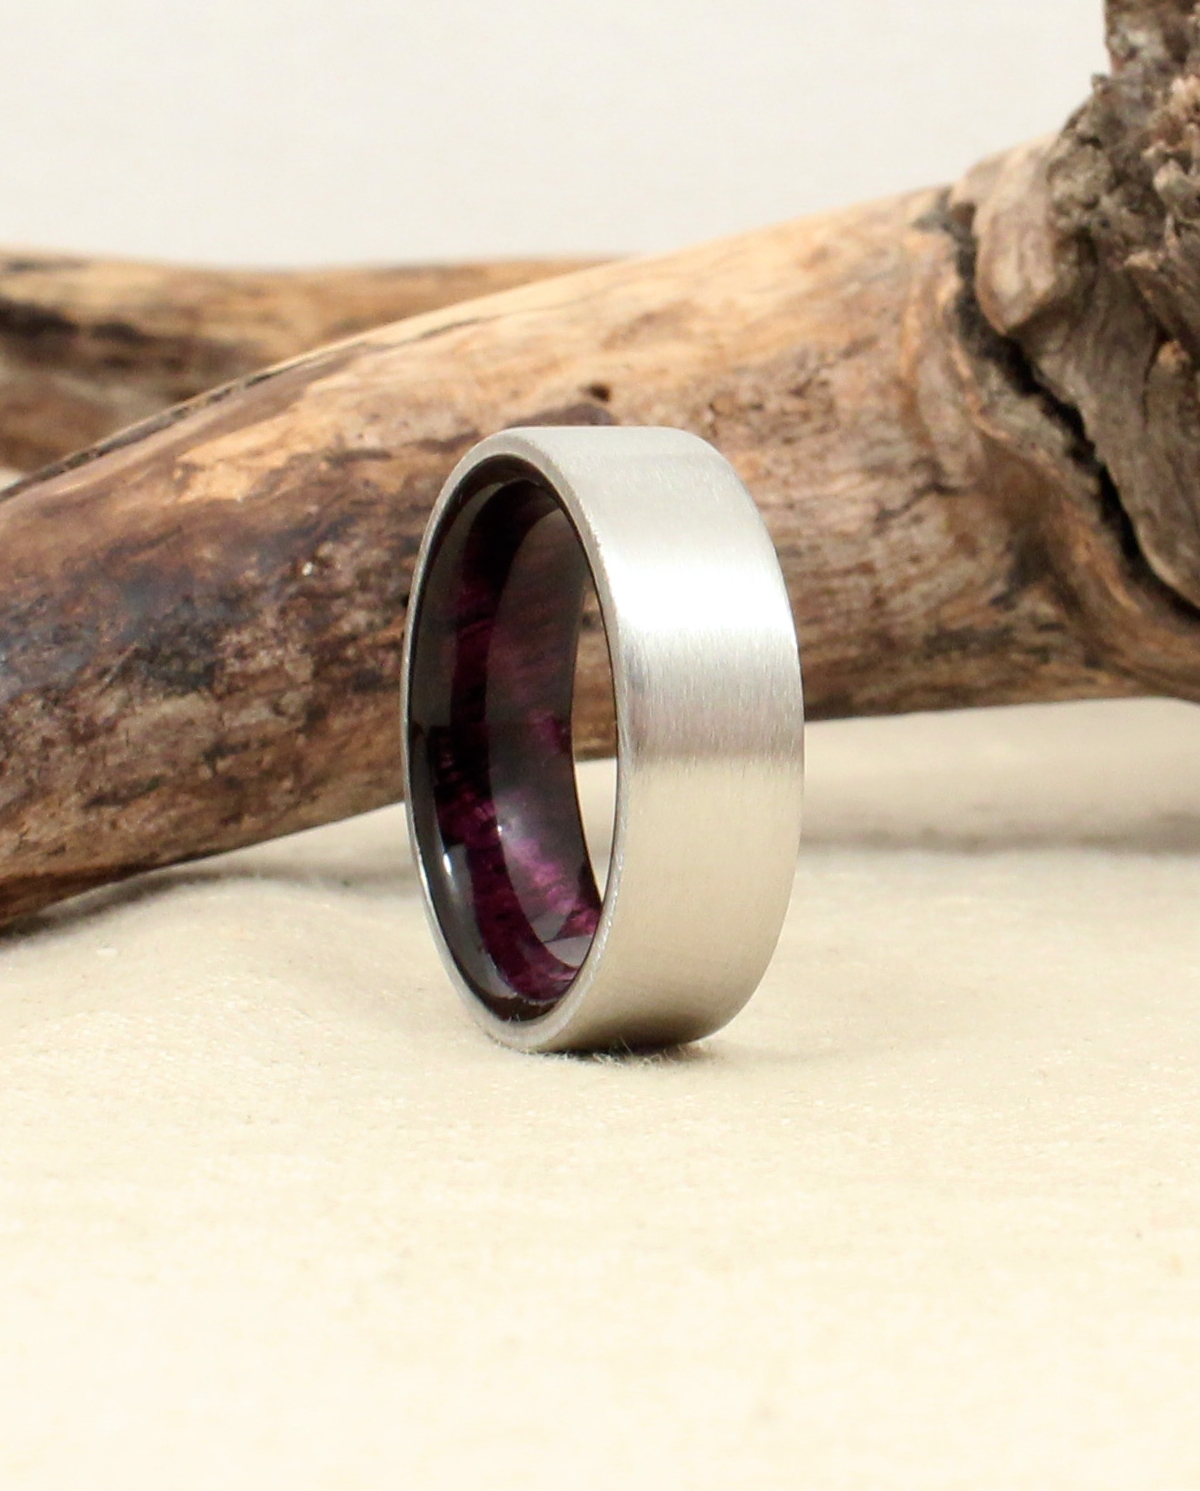 koa-wooden-ring-purple-wedgewood-cobalt.JPG